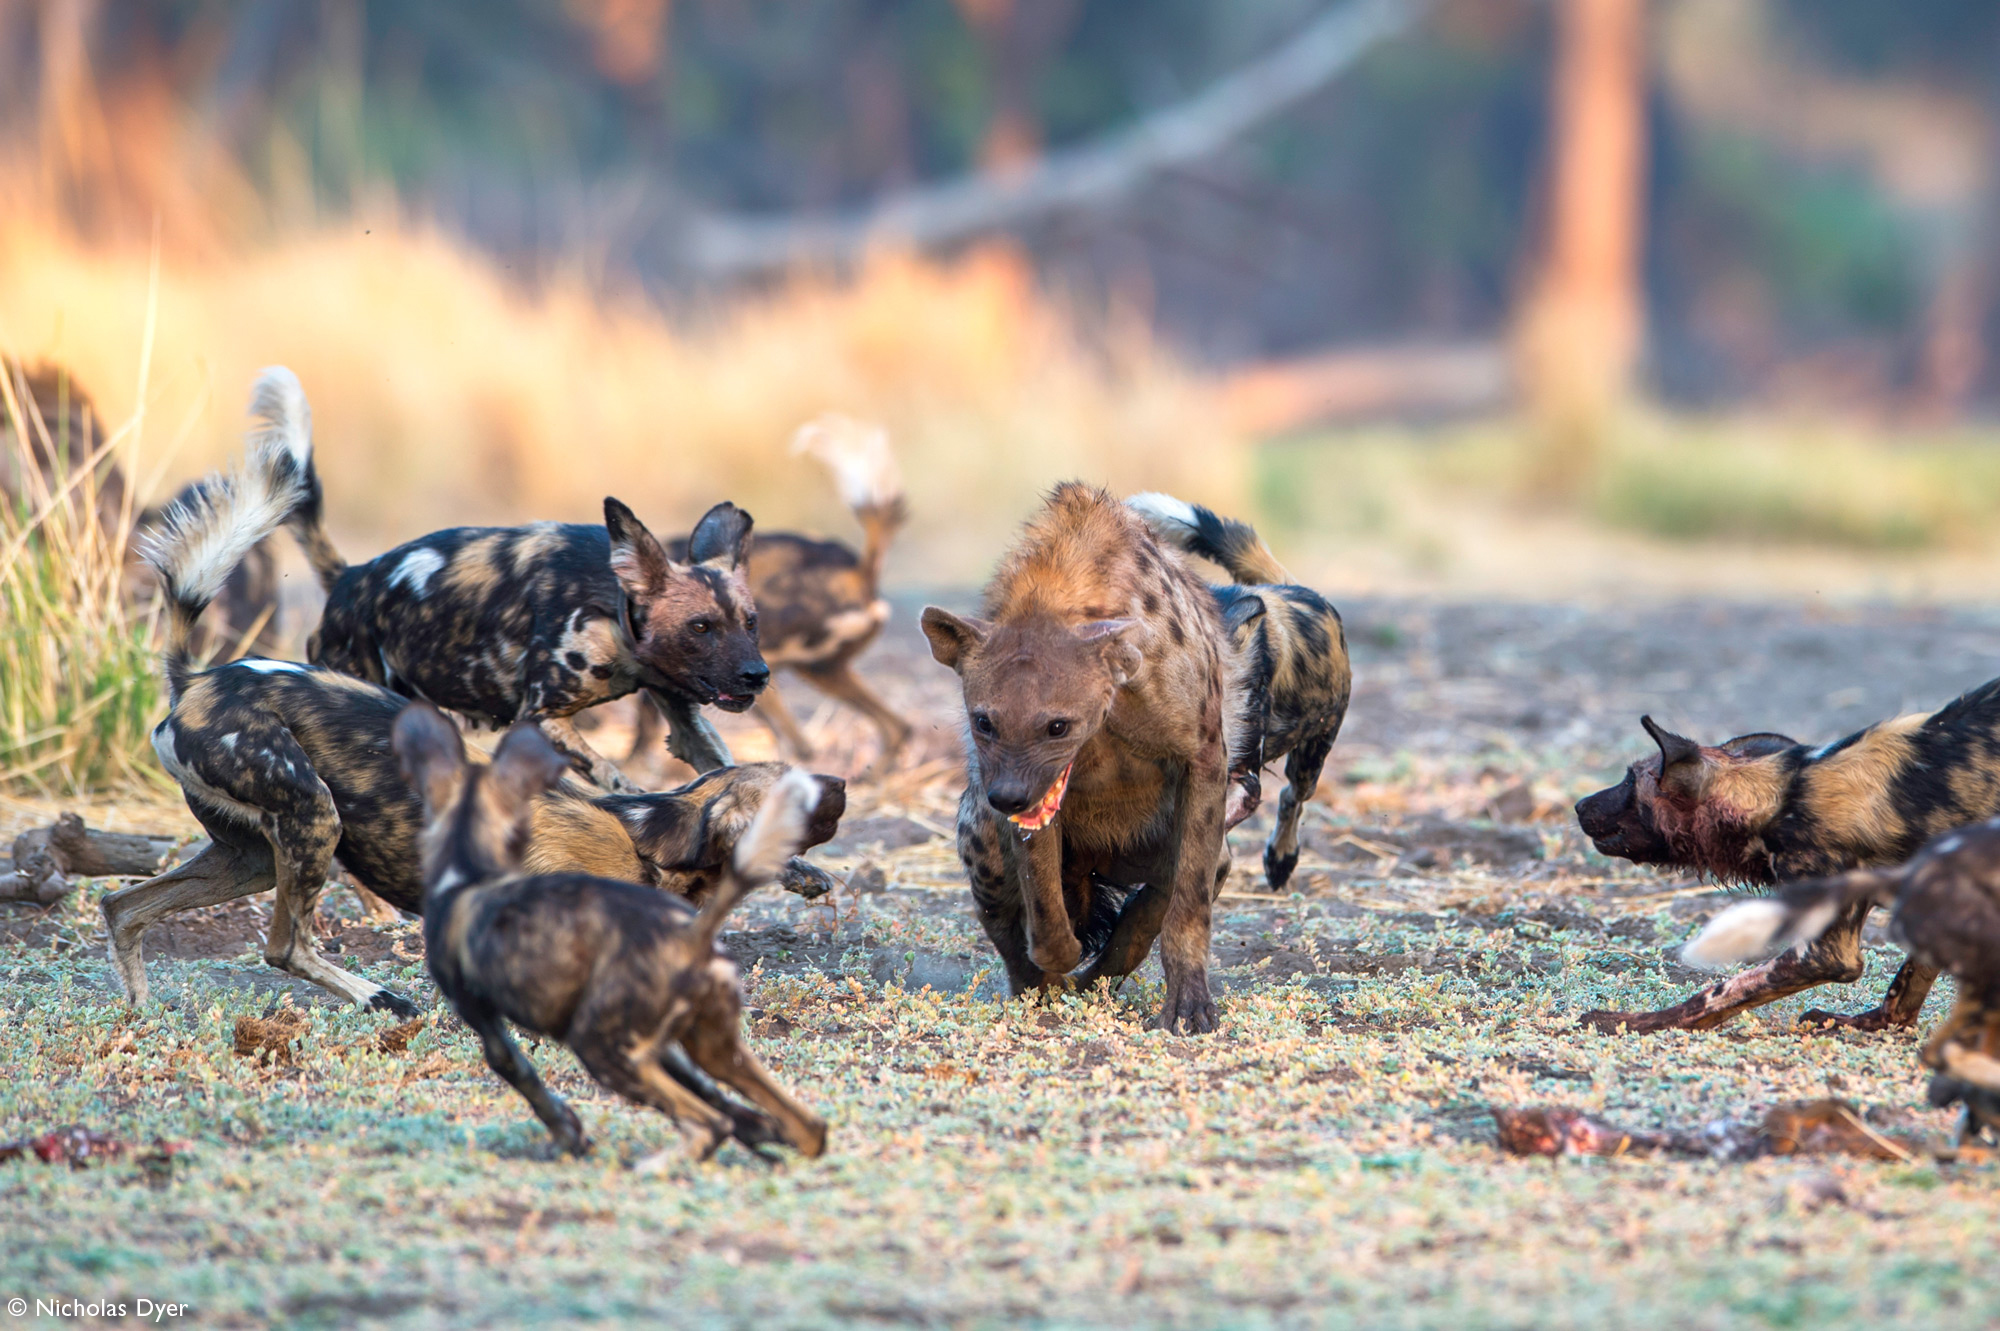 Hyena surrounded by a pack of painted wolves, African wild dogs, in Mana Pools in Zimbabwe